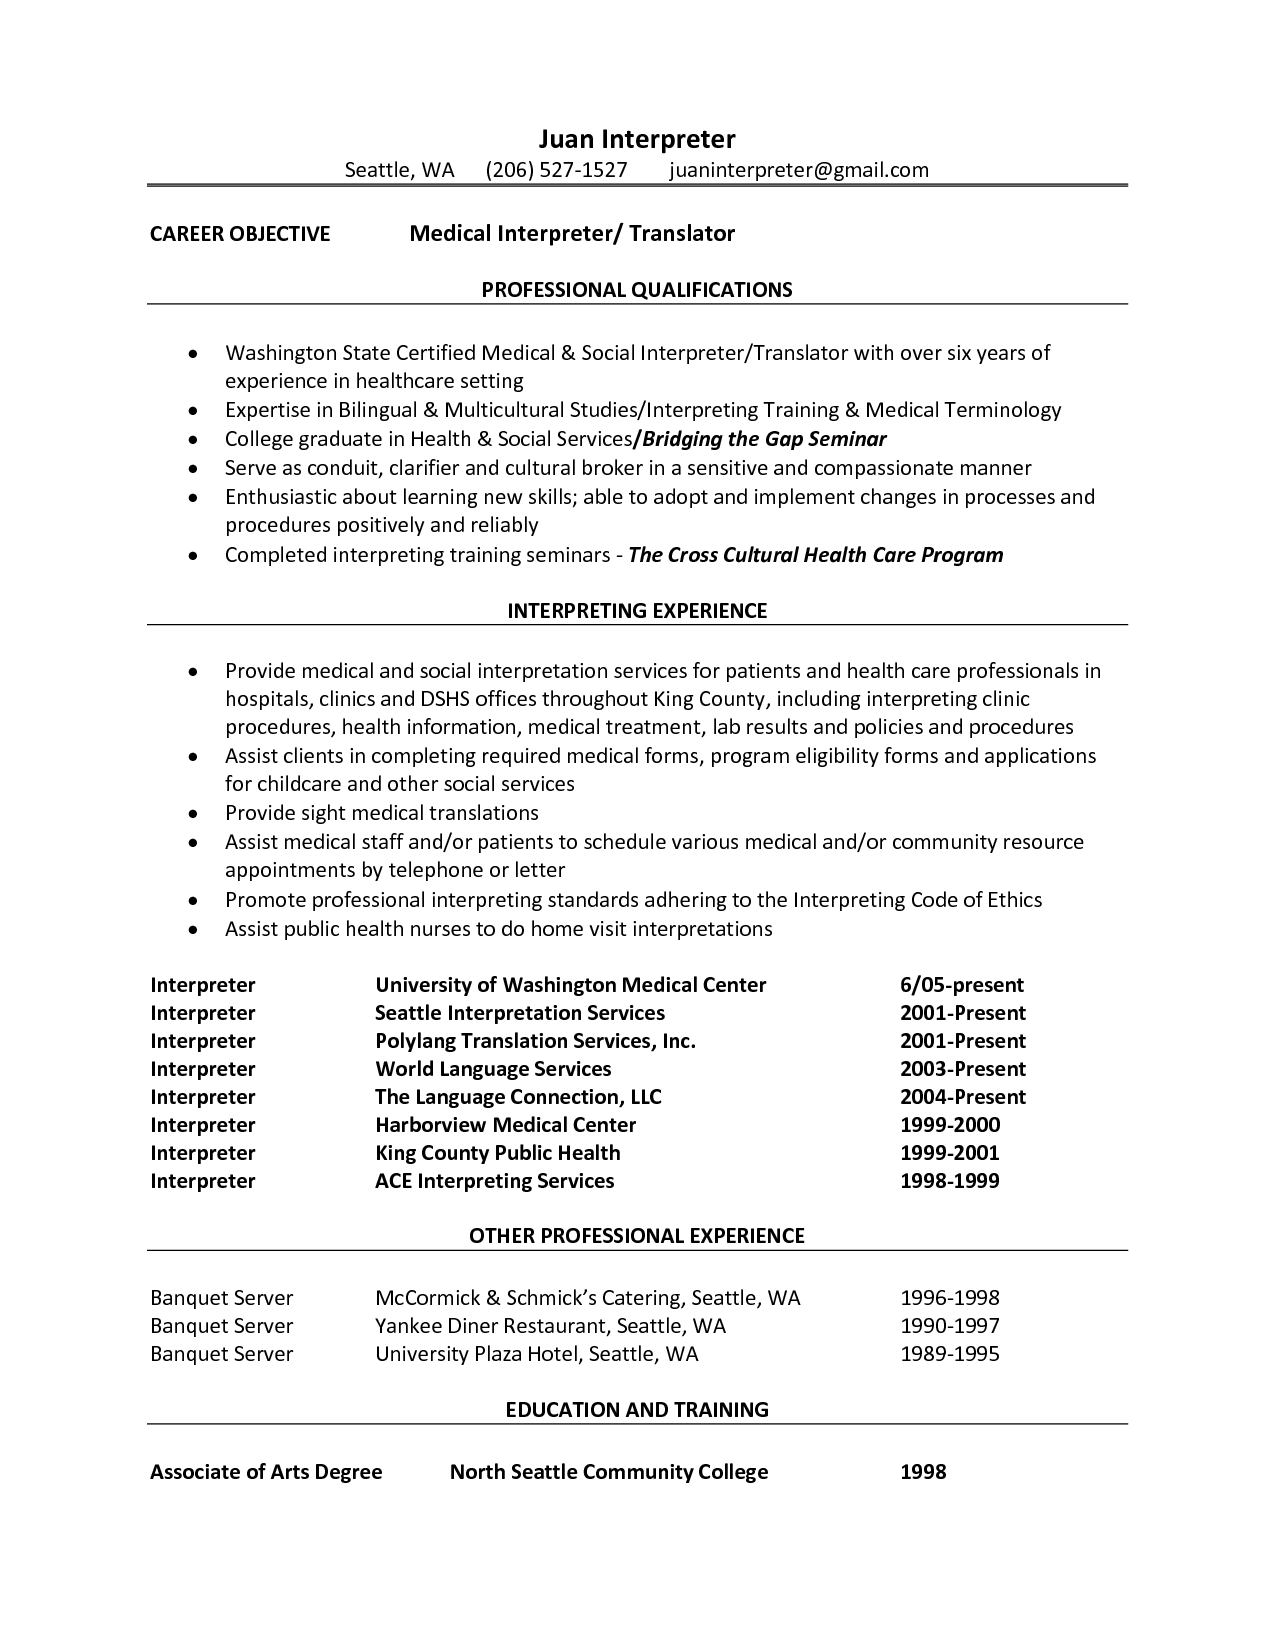 Medical Review Analyst Job Description Resume  Http